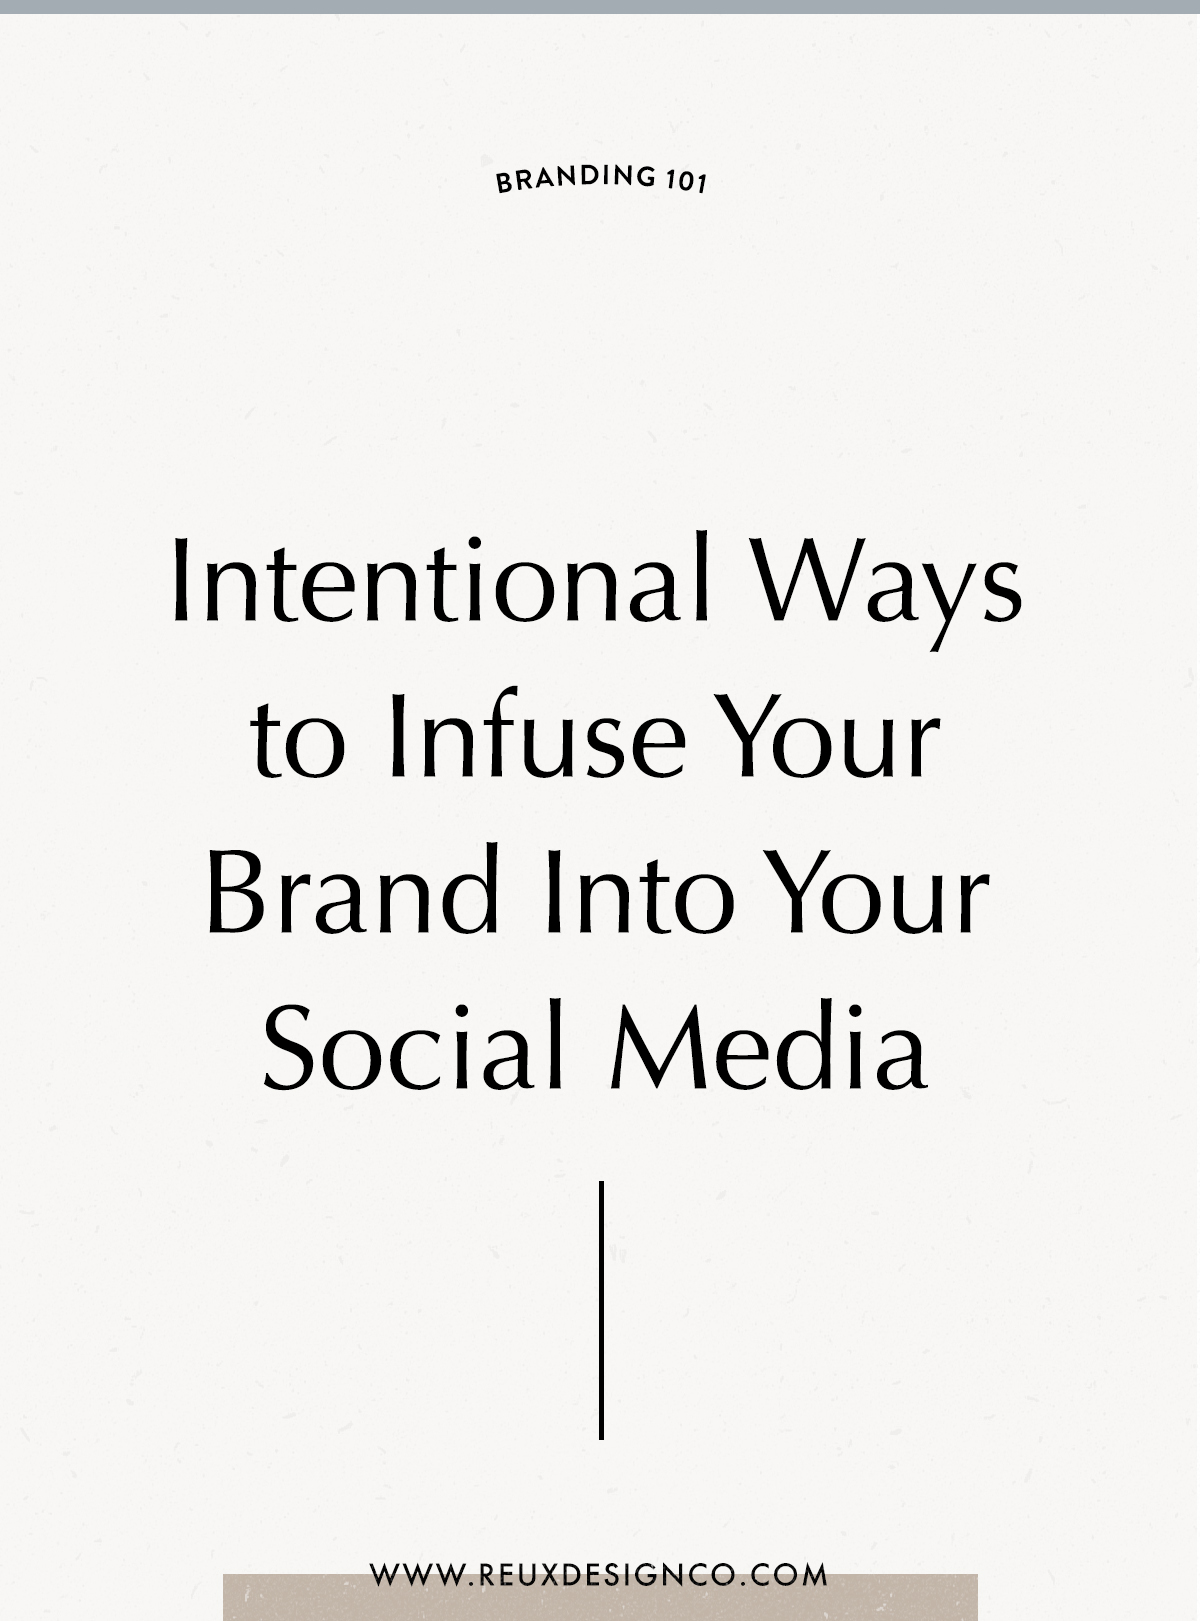 Infusing Your Brand personality into your social media content | intentionally branding your social media | Reux Design Co.